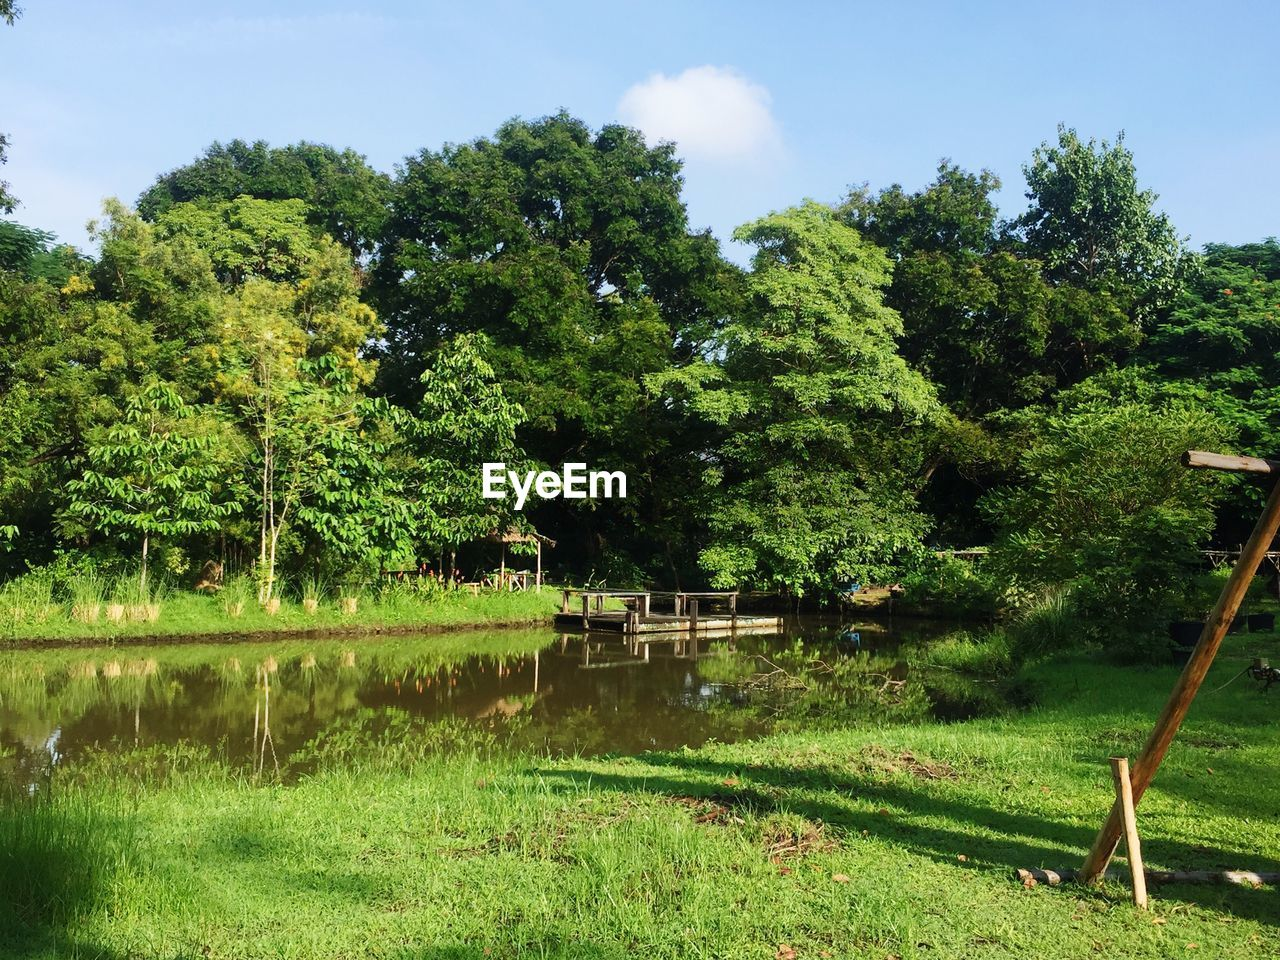 tree, plant, green color, growth, nature, grass, day, lake, tranquility, water, no people, land, beauty in nature, sky, tranquil scene, scenics - nature, outdoors, non-urban scene, field